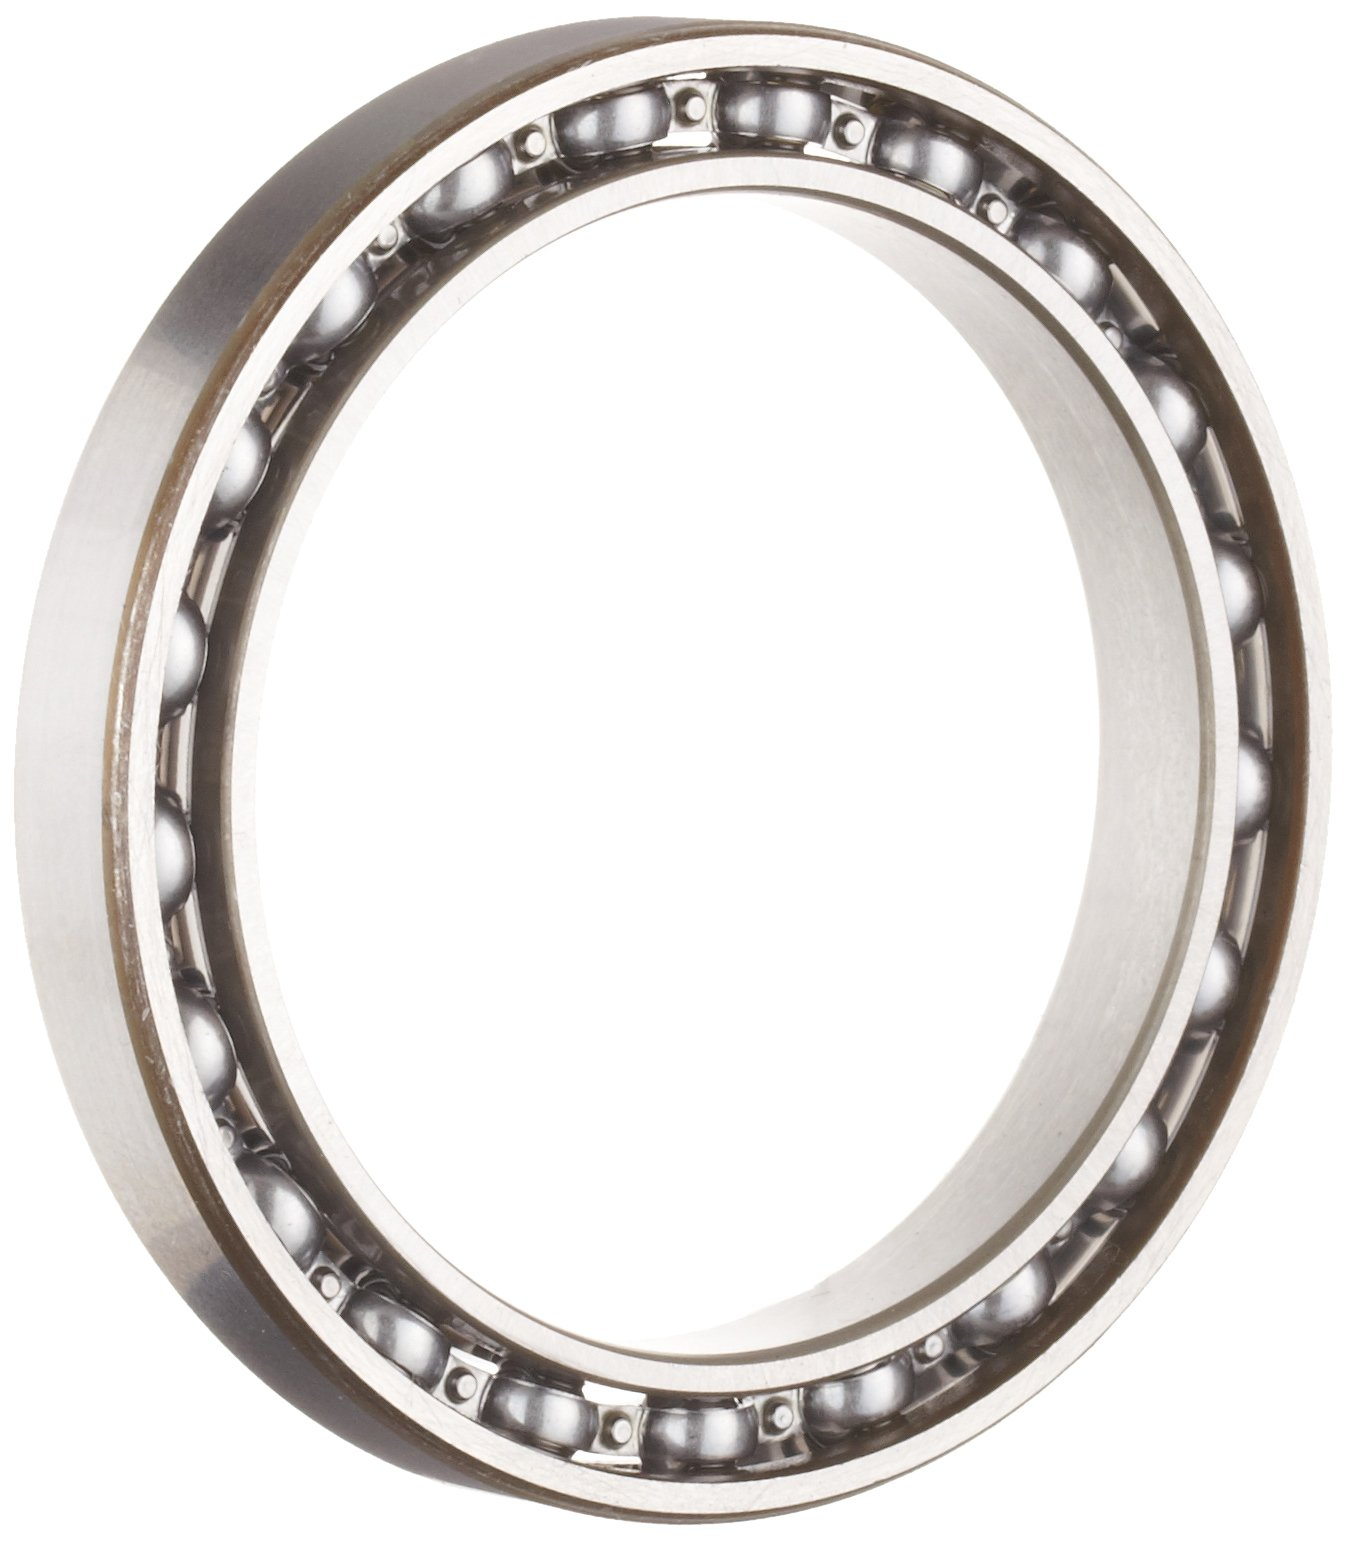 NSK 6822 Deep Groove Ball Bearing, Single Row, Open, Pressed Steel Cage, Normal Clearance, Metric, 110mm Bore, 140mm OD, 16mm Width, 4300rpm Maximum Rotational Speed, 32500N Static Load Capacity, 28100N Dynamic Load Capacity